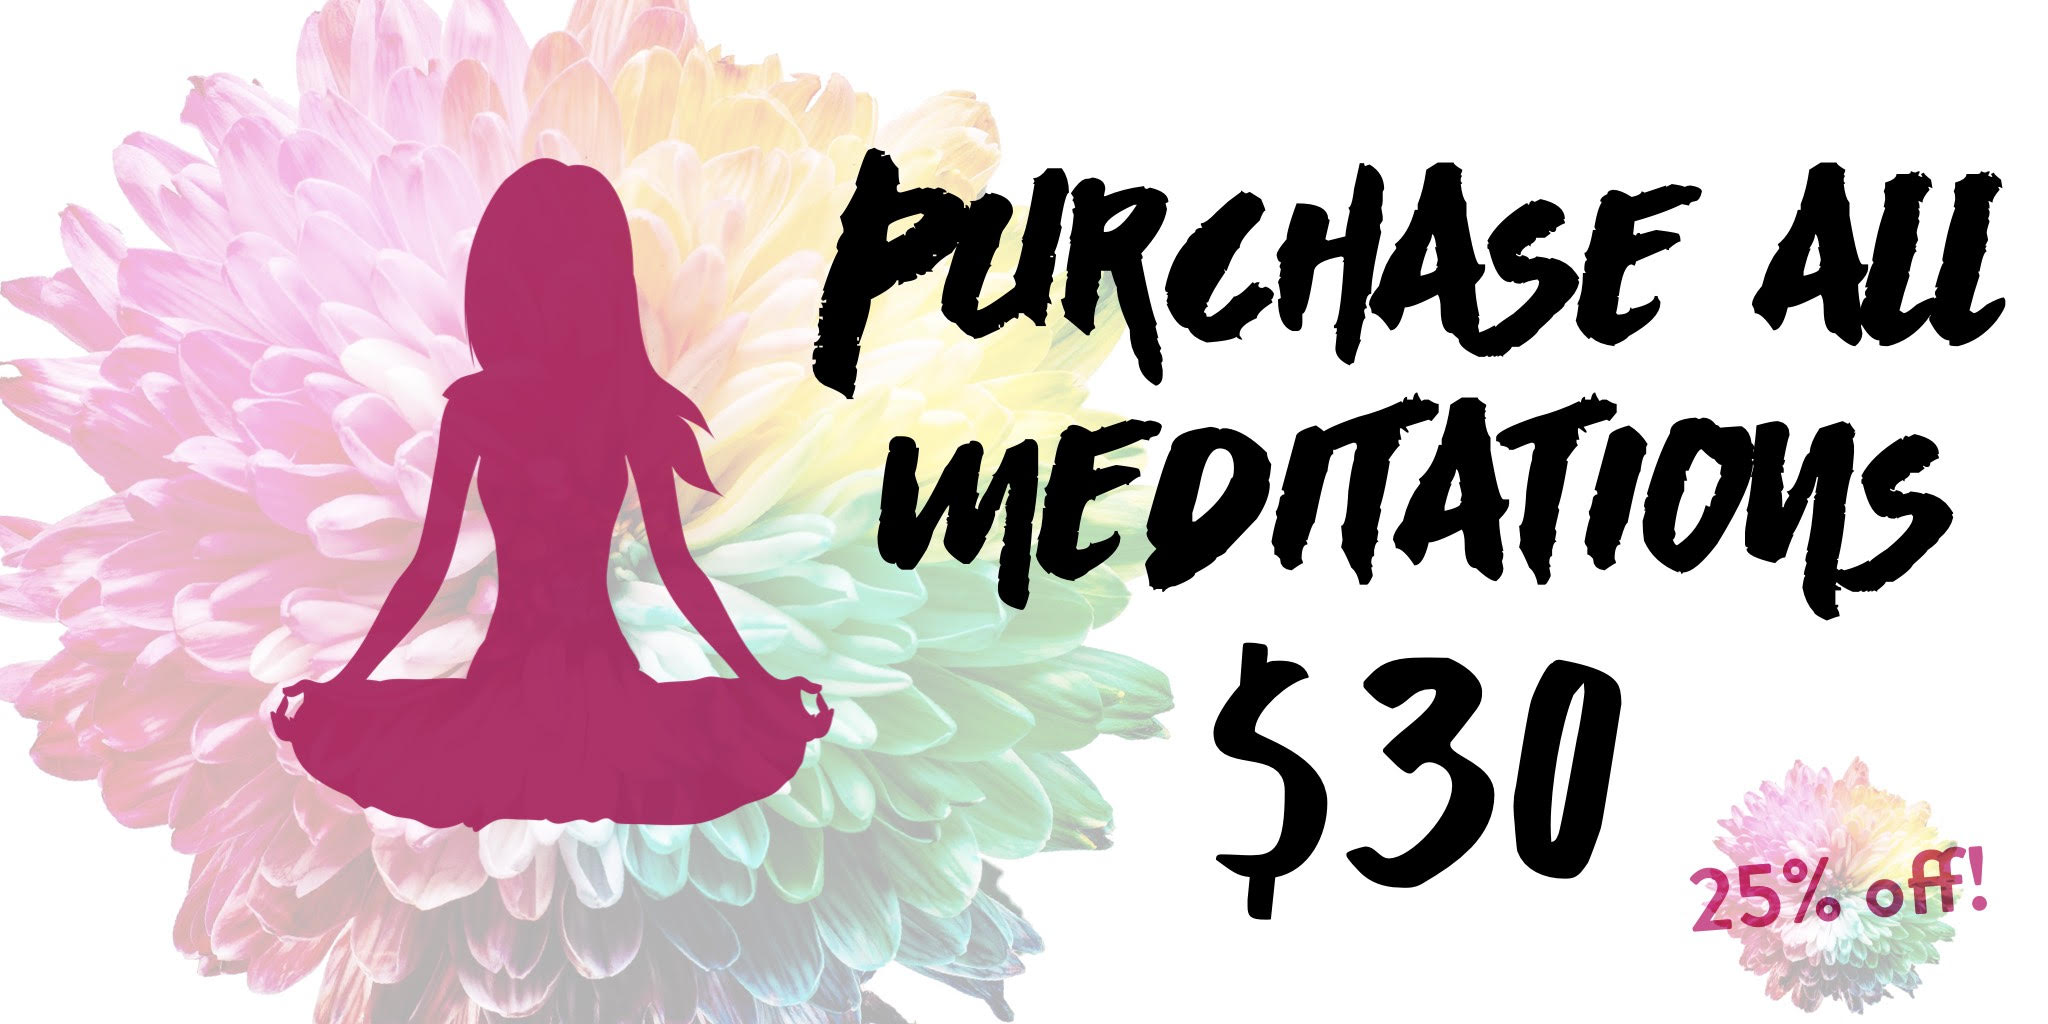 ALL 20 MEDITATIONS - $30 - Click Image To Purchase!